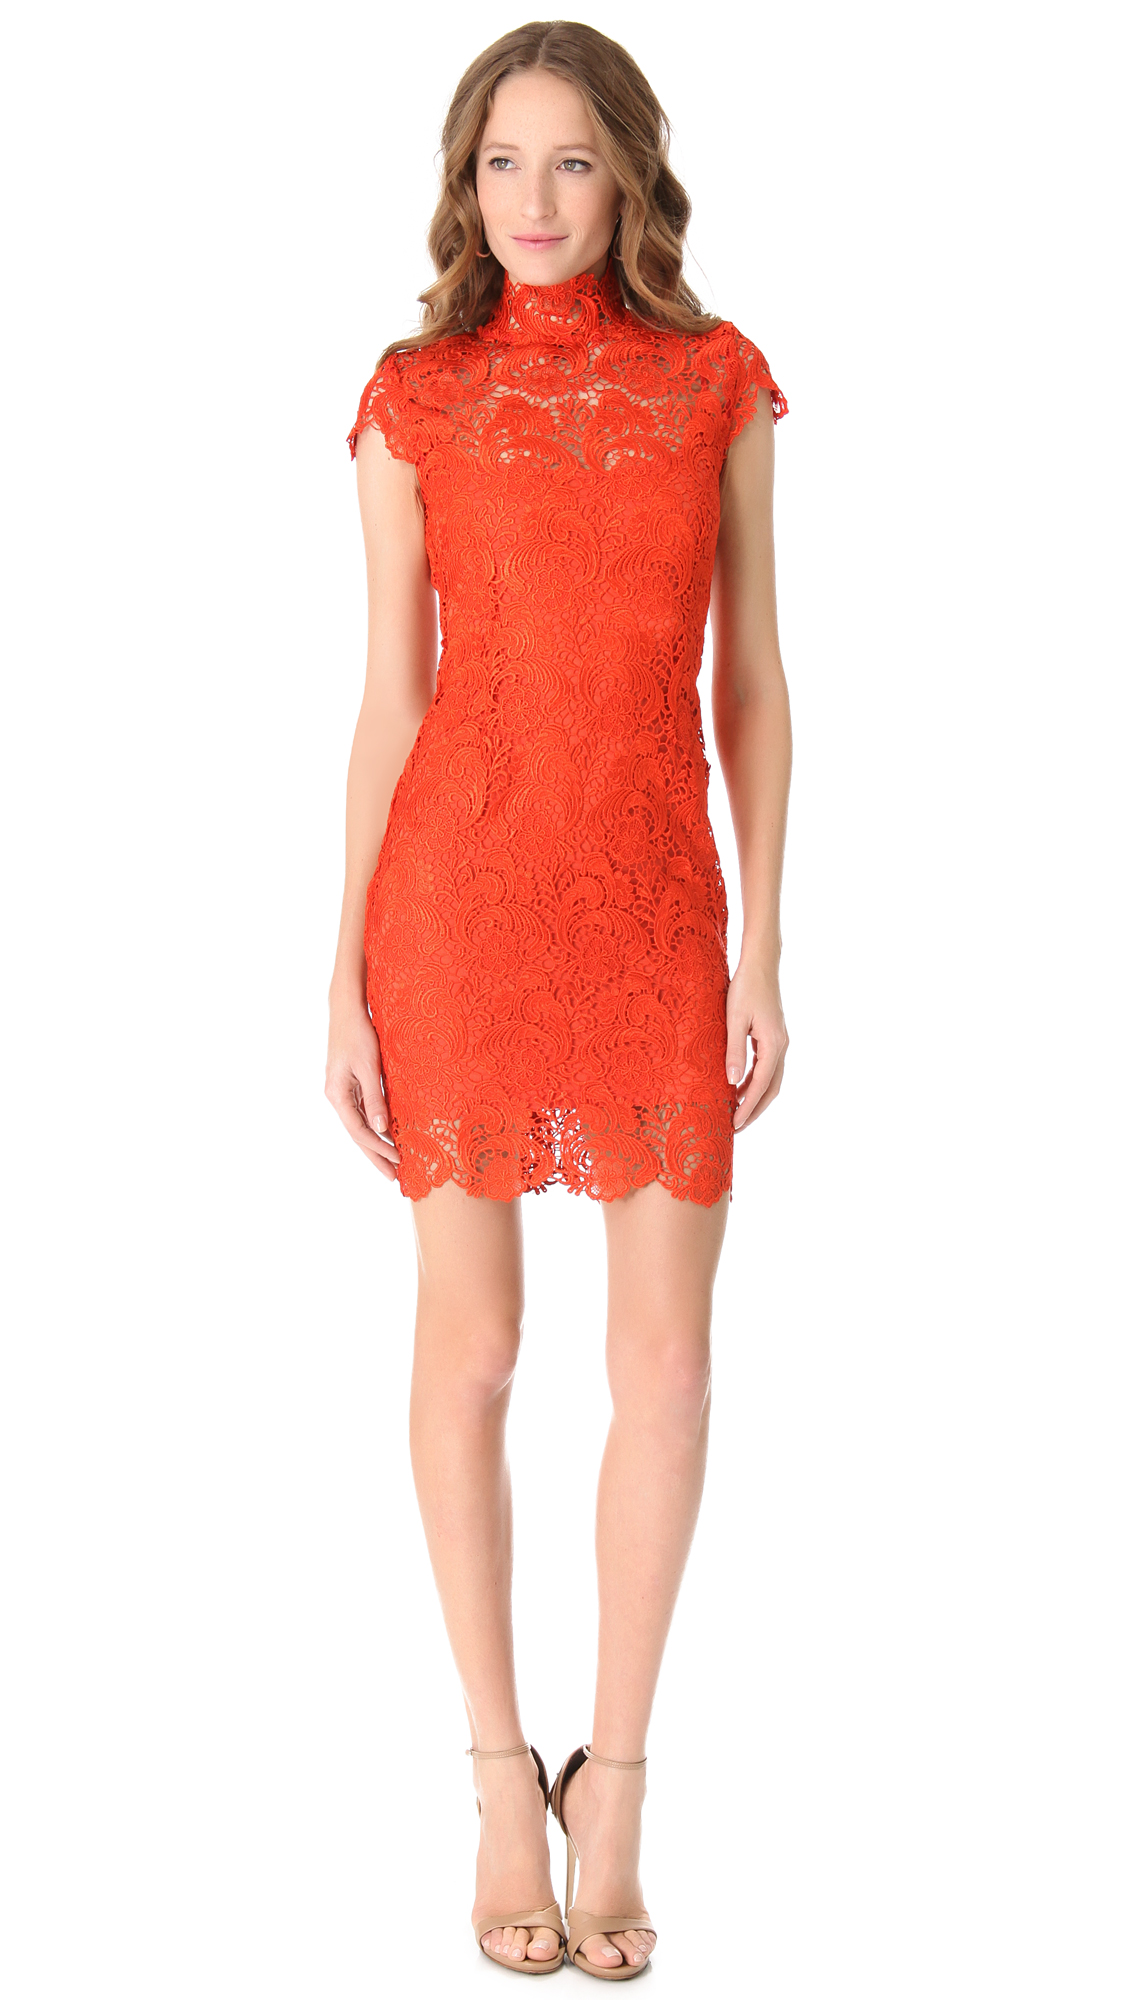 ff6bbdcccbb Red Lace Short Sleeve Dress - Data Dynamic AG